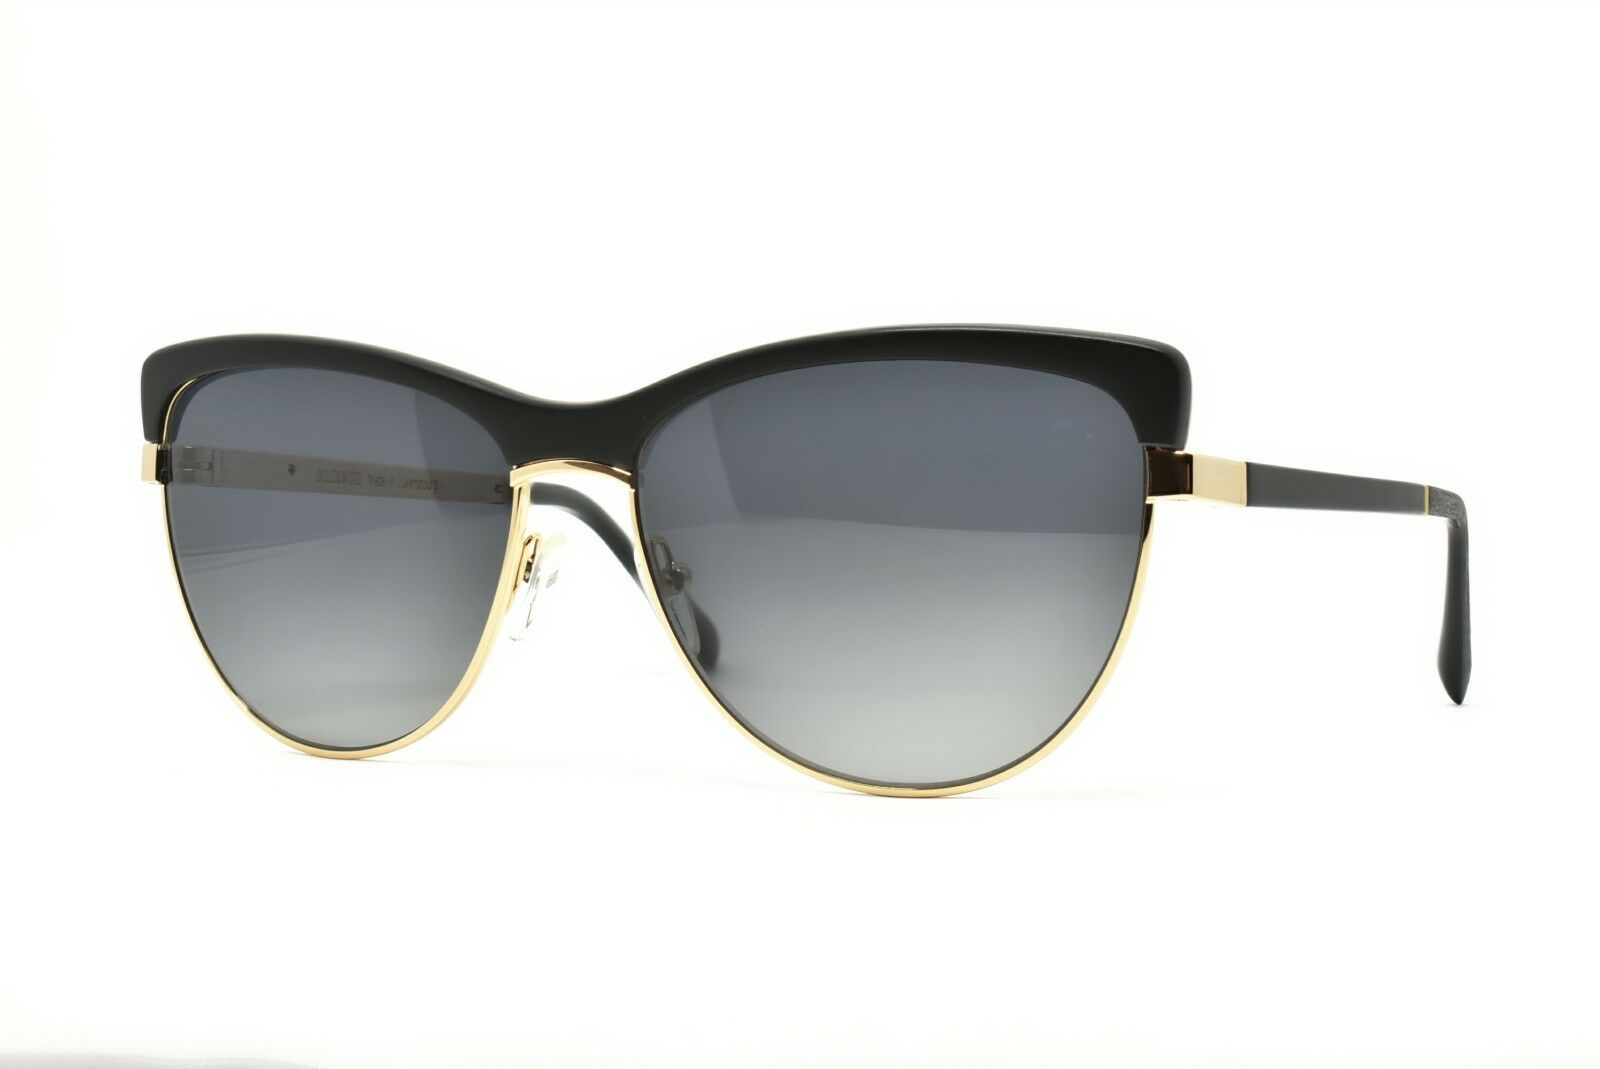 Gold and Wood Sunglasses ALTAIS 04 58-15-130 New Authentic - retail